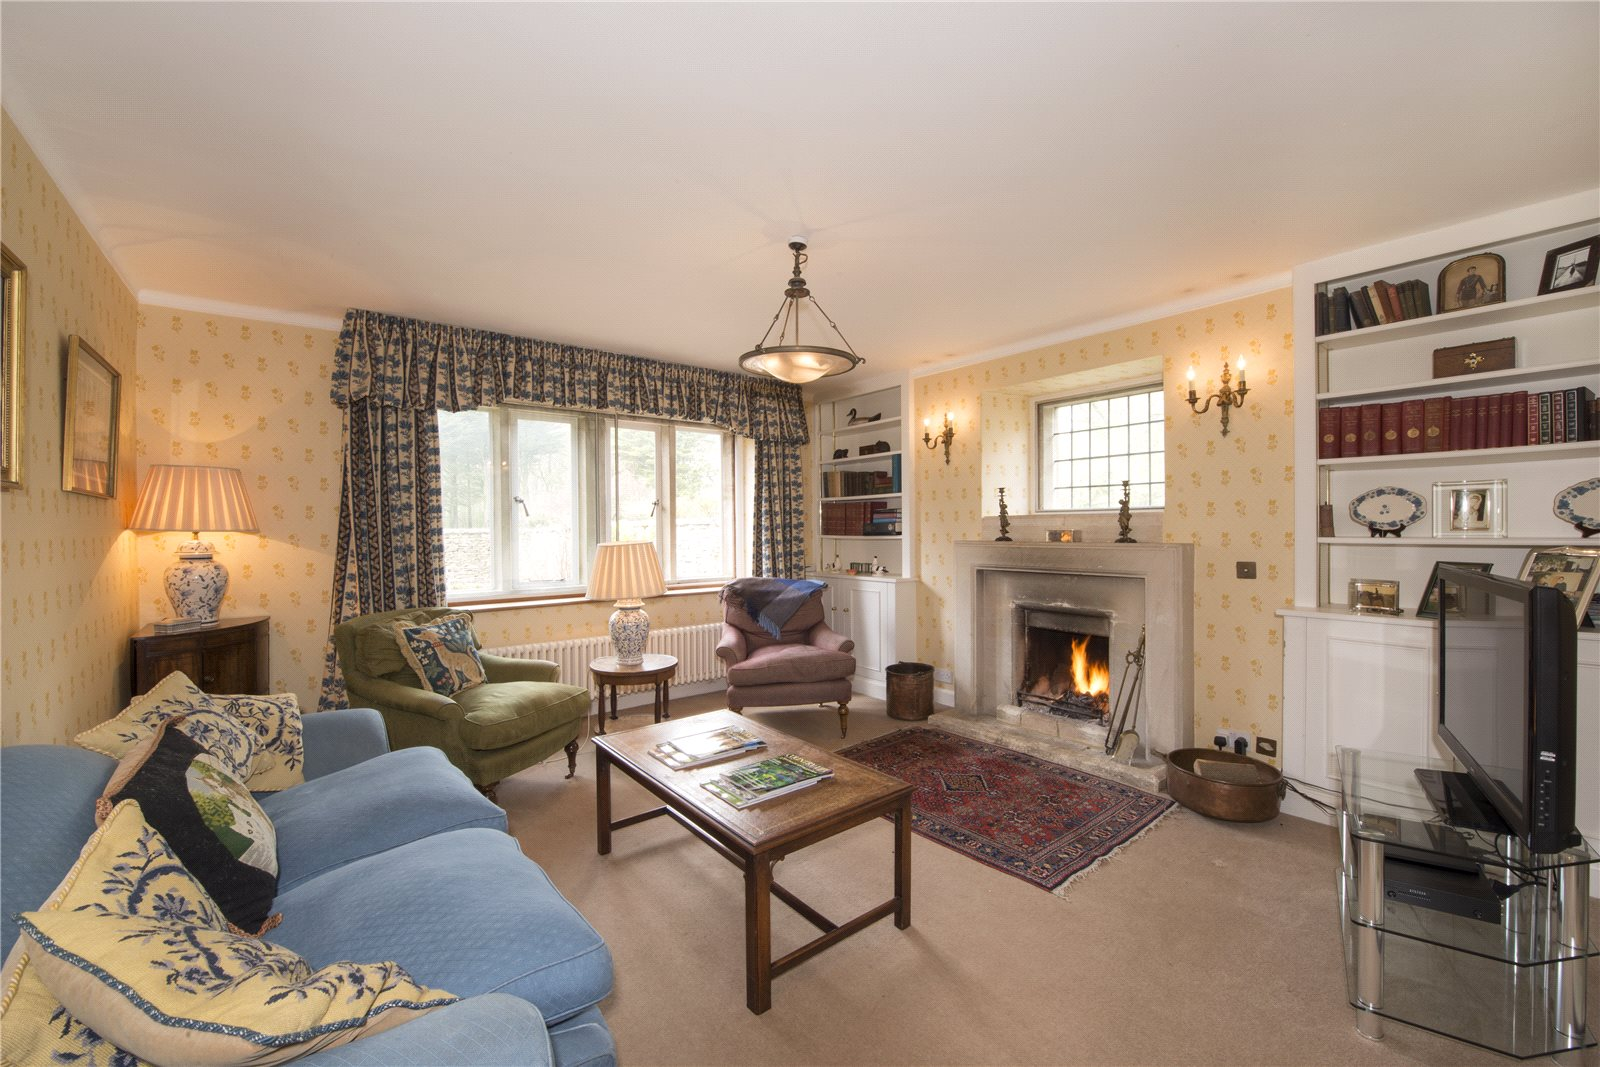 Additional photo for property listing at Warrens Gorse, Daglingworth, Cirencester, Gloucestershire, GL7 Cirencester, Ingiltere